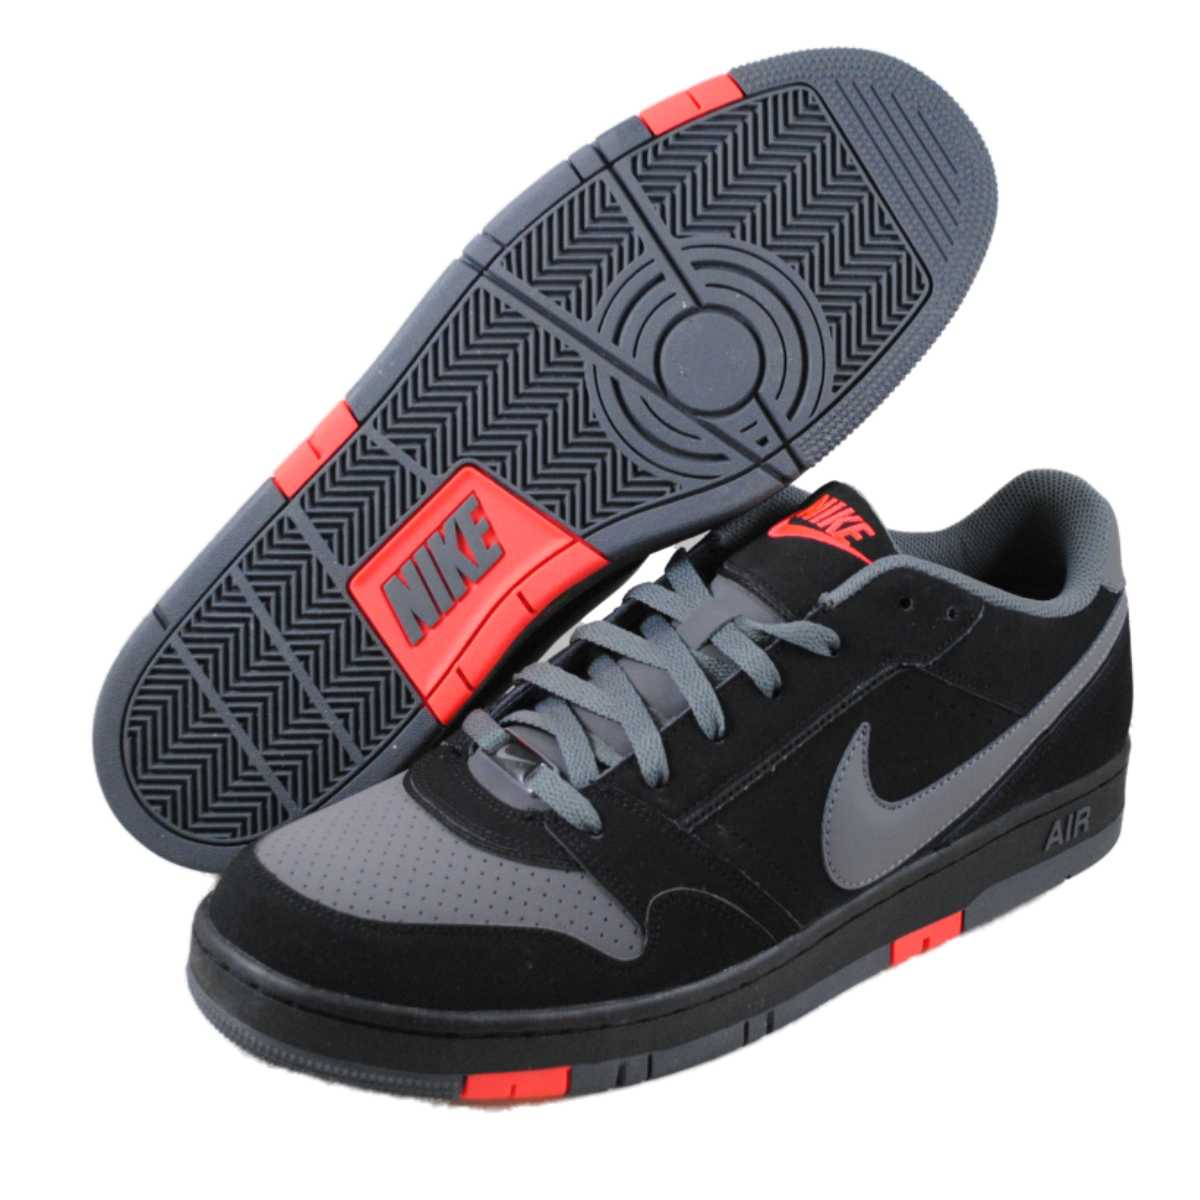 Nike Mens Air Prestige III Black fashion-sneakers at Sears.com